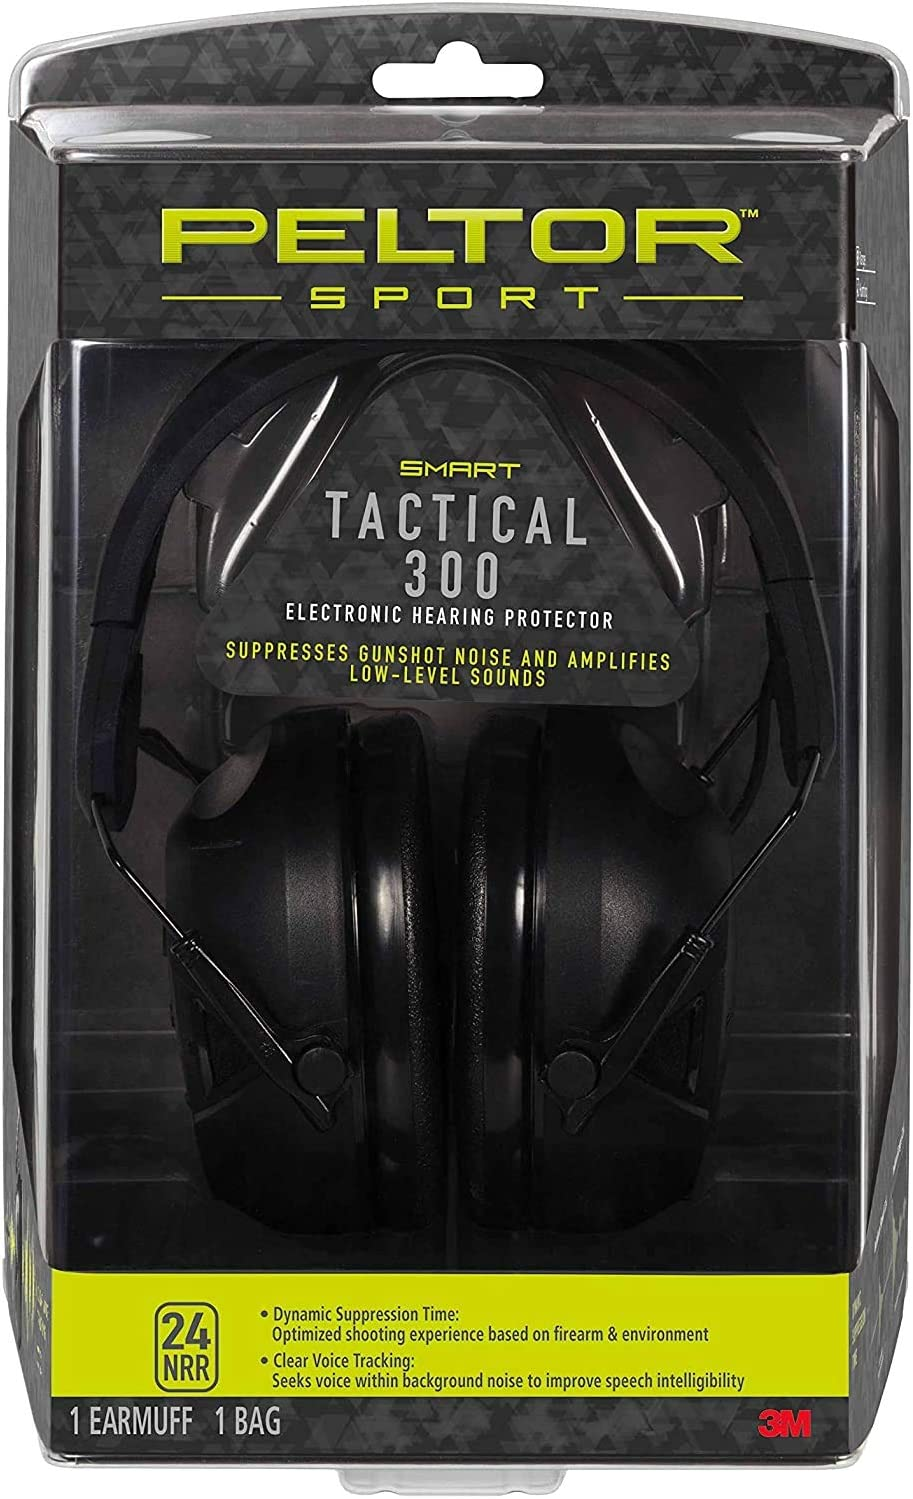 Peltor Sport Tactical 300 Smart Electronic Hearing Protector, Ear Protection, NRR 24 dB, Ideal for the Range, Shooting and Hunting, TAC300-OTH: Home Improvement